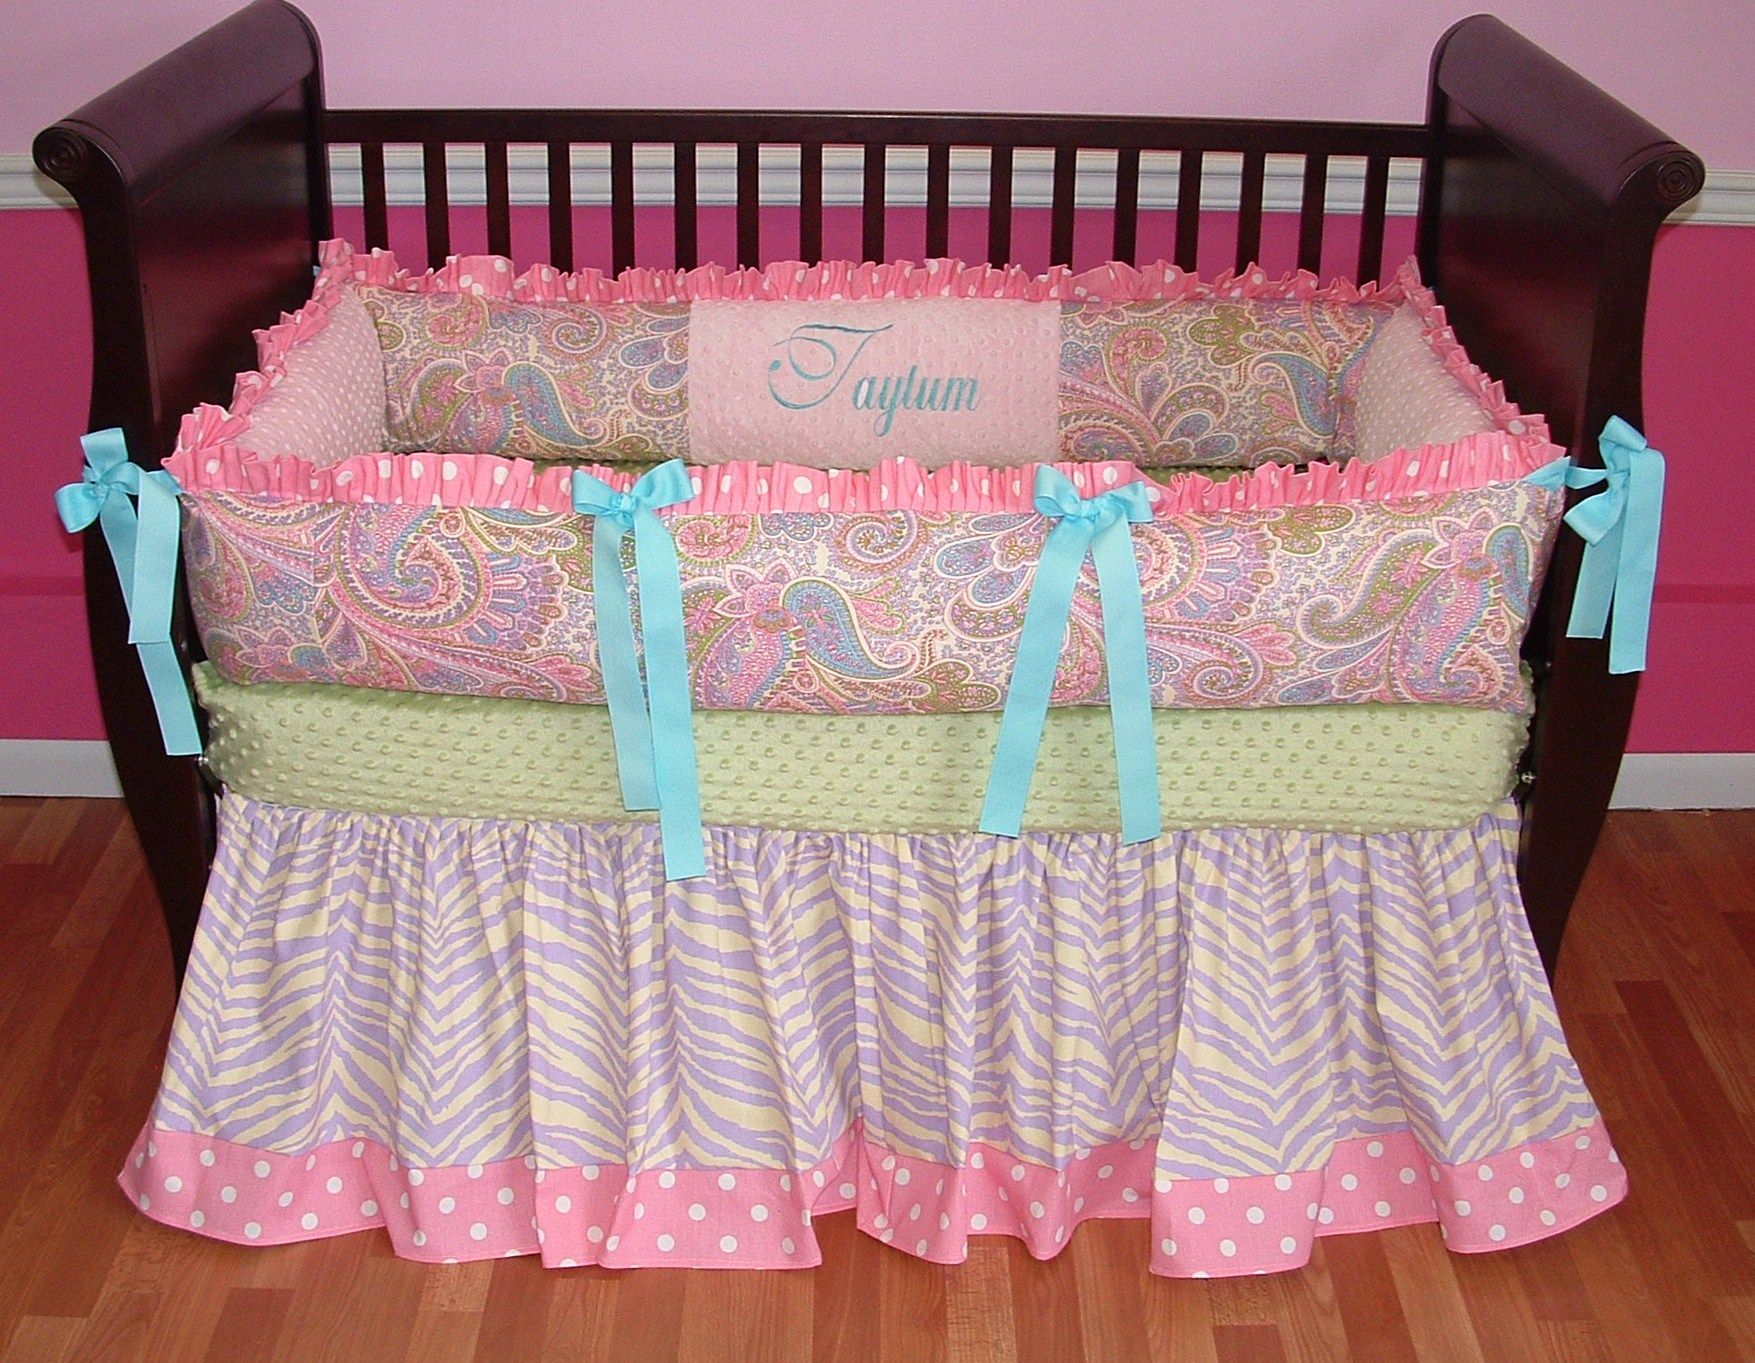 Baby girl paisley bedding - 17 Best Images About Nursery Ideas On Pinterest Baby Crib Bedding Crib Sets And Bebe